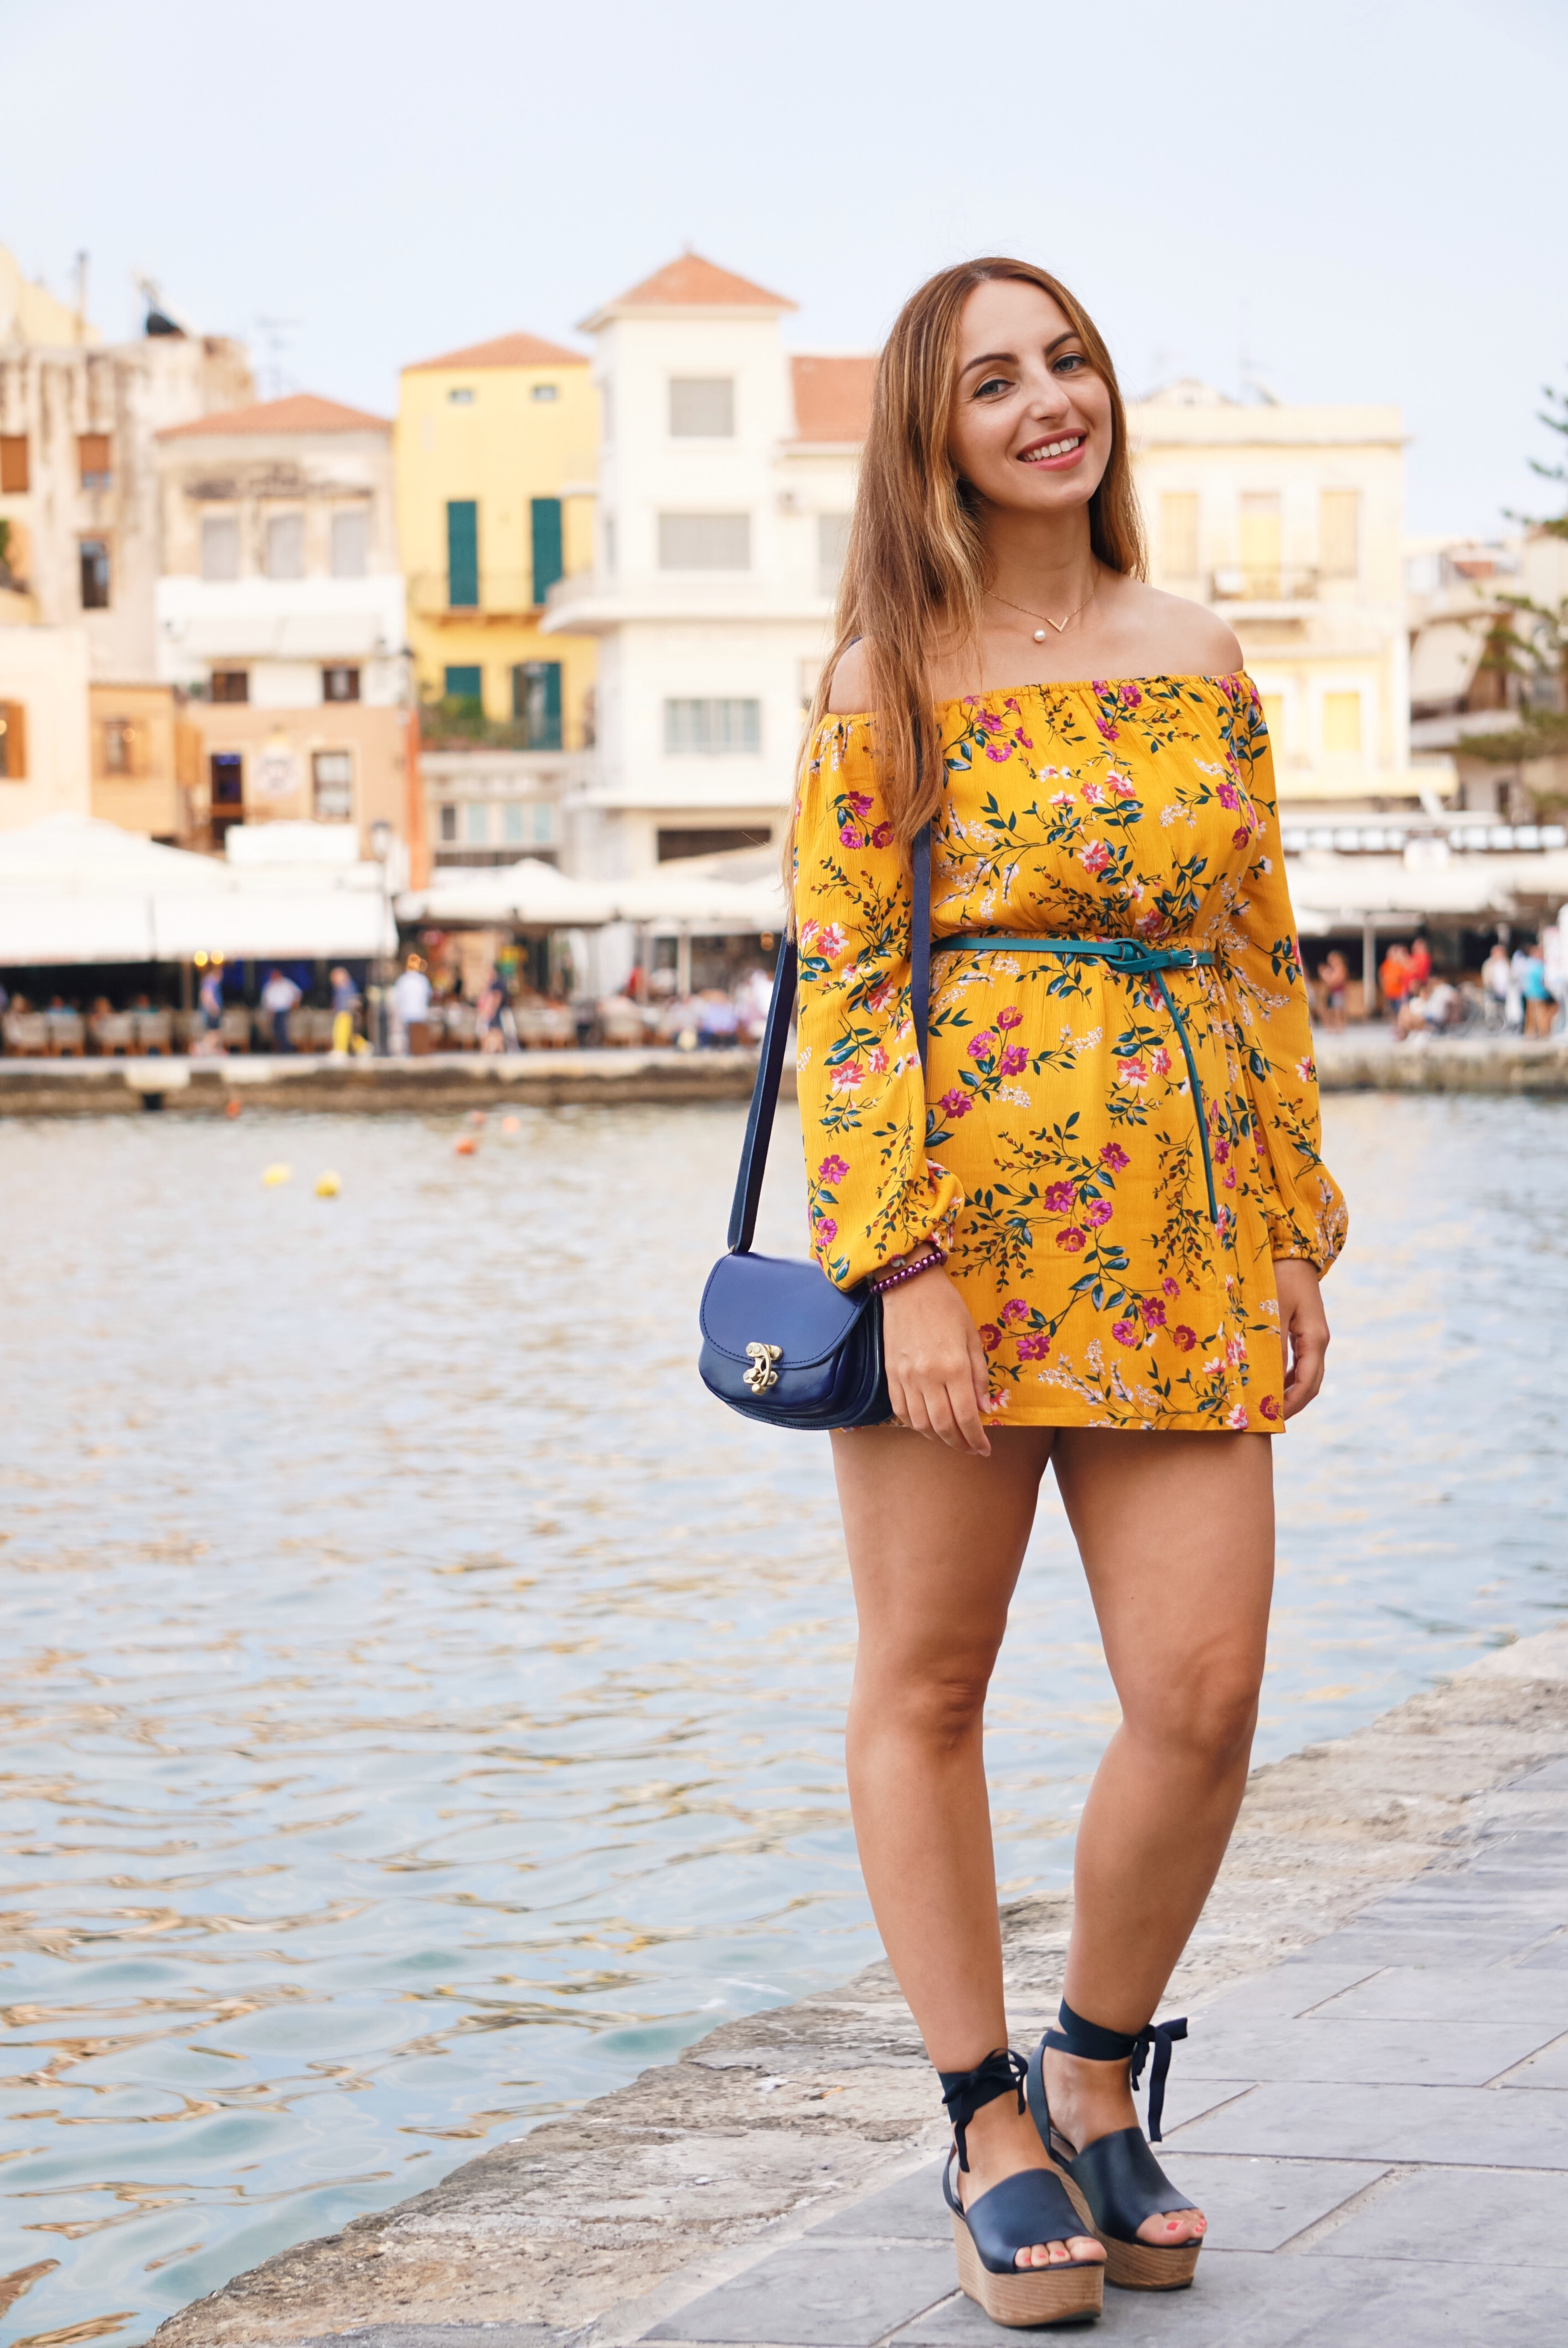 Chania-Crete-Fashionblogger-Outfit-Post-6